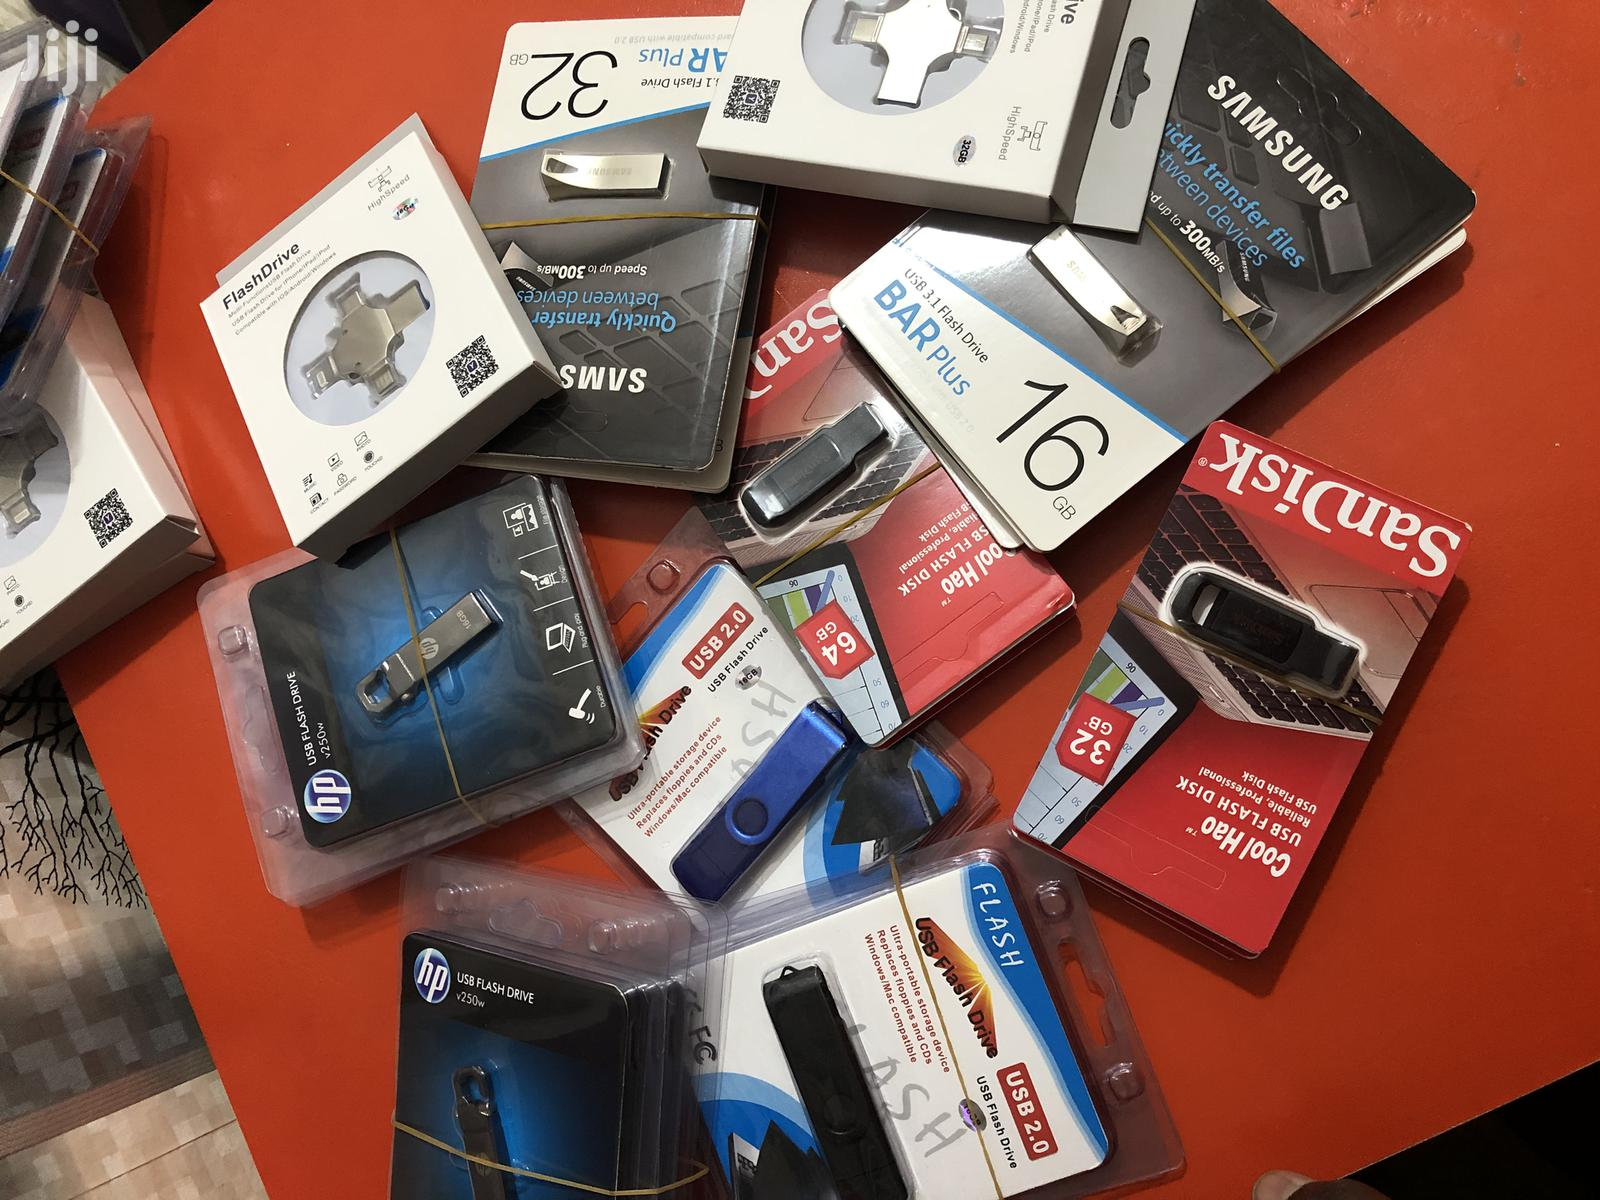 Original Flash Disk And Memory Cards | Accessories for Mobile Phones & Tablets for sale in Kinondoni, Dar es Salaam, Tanzania